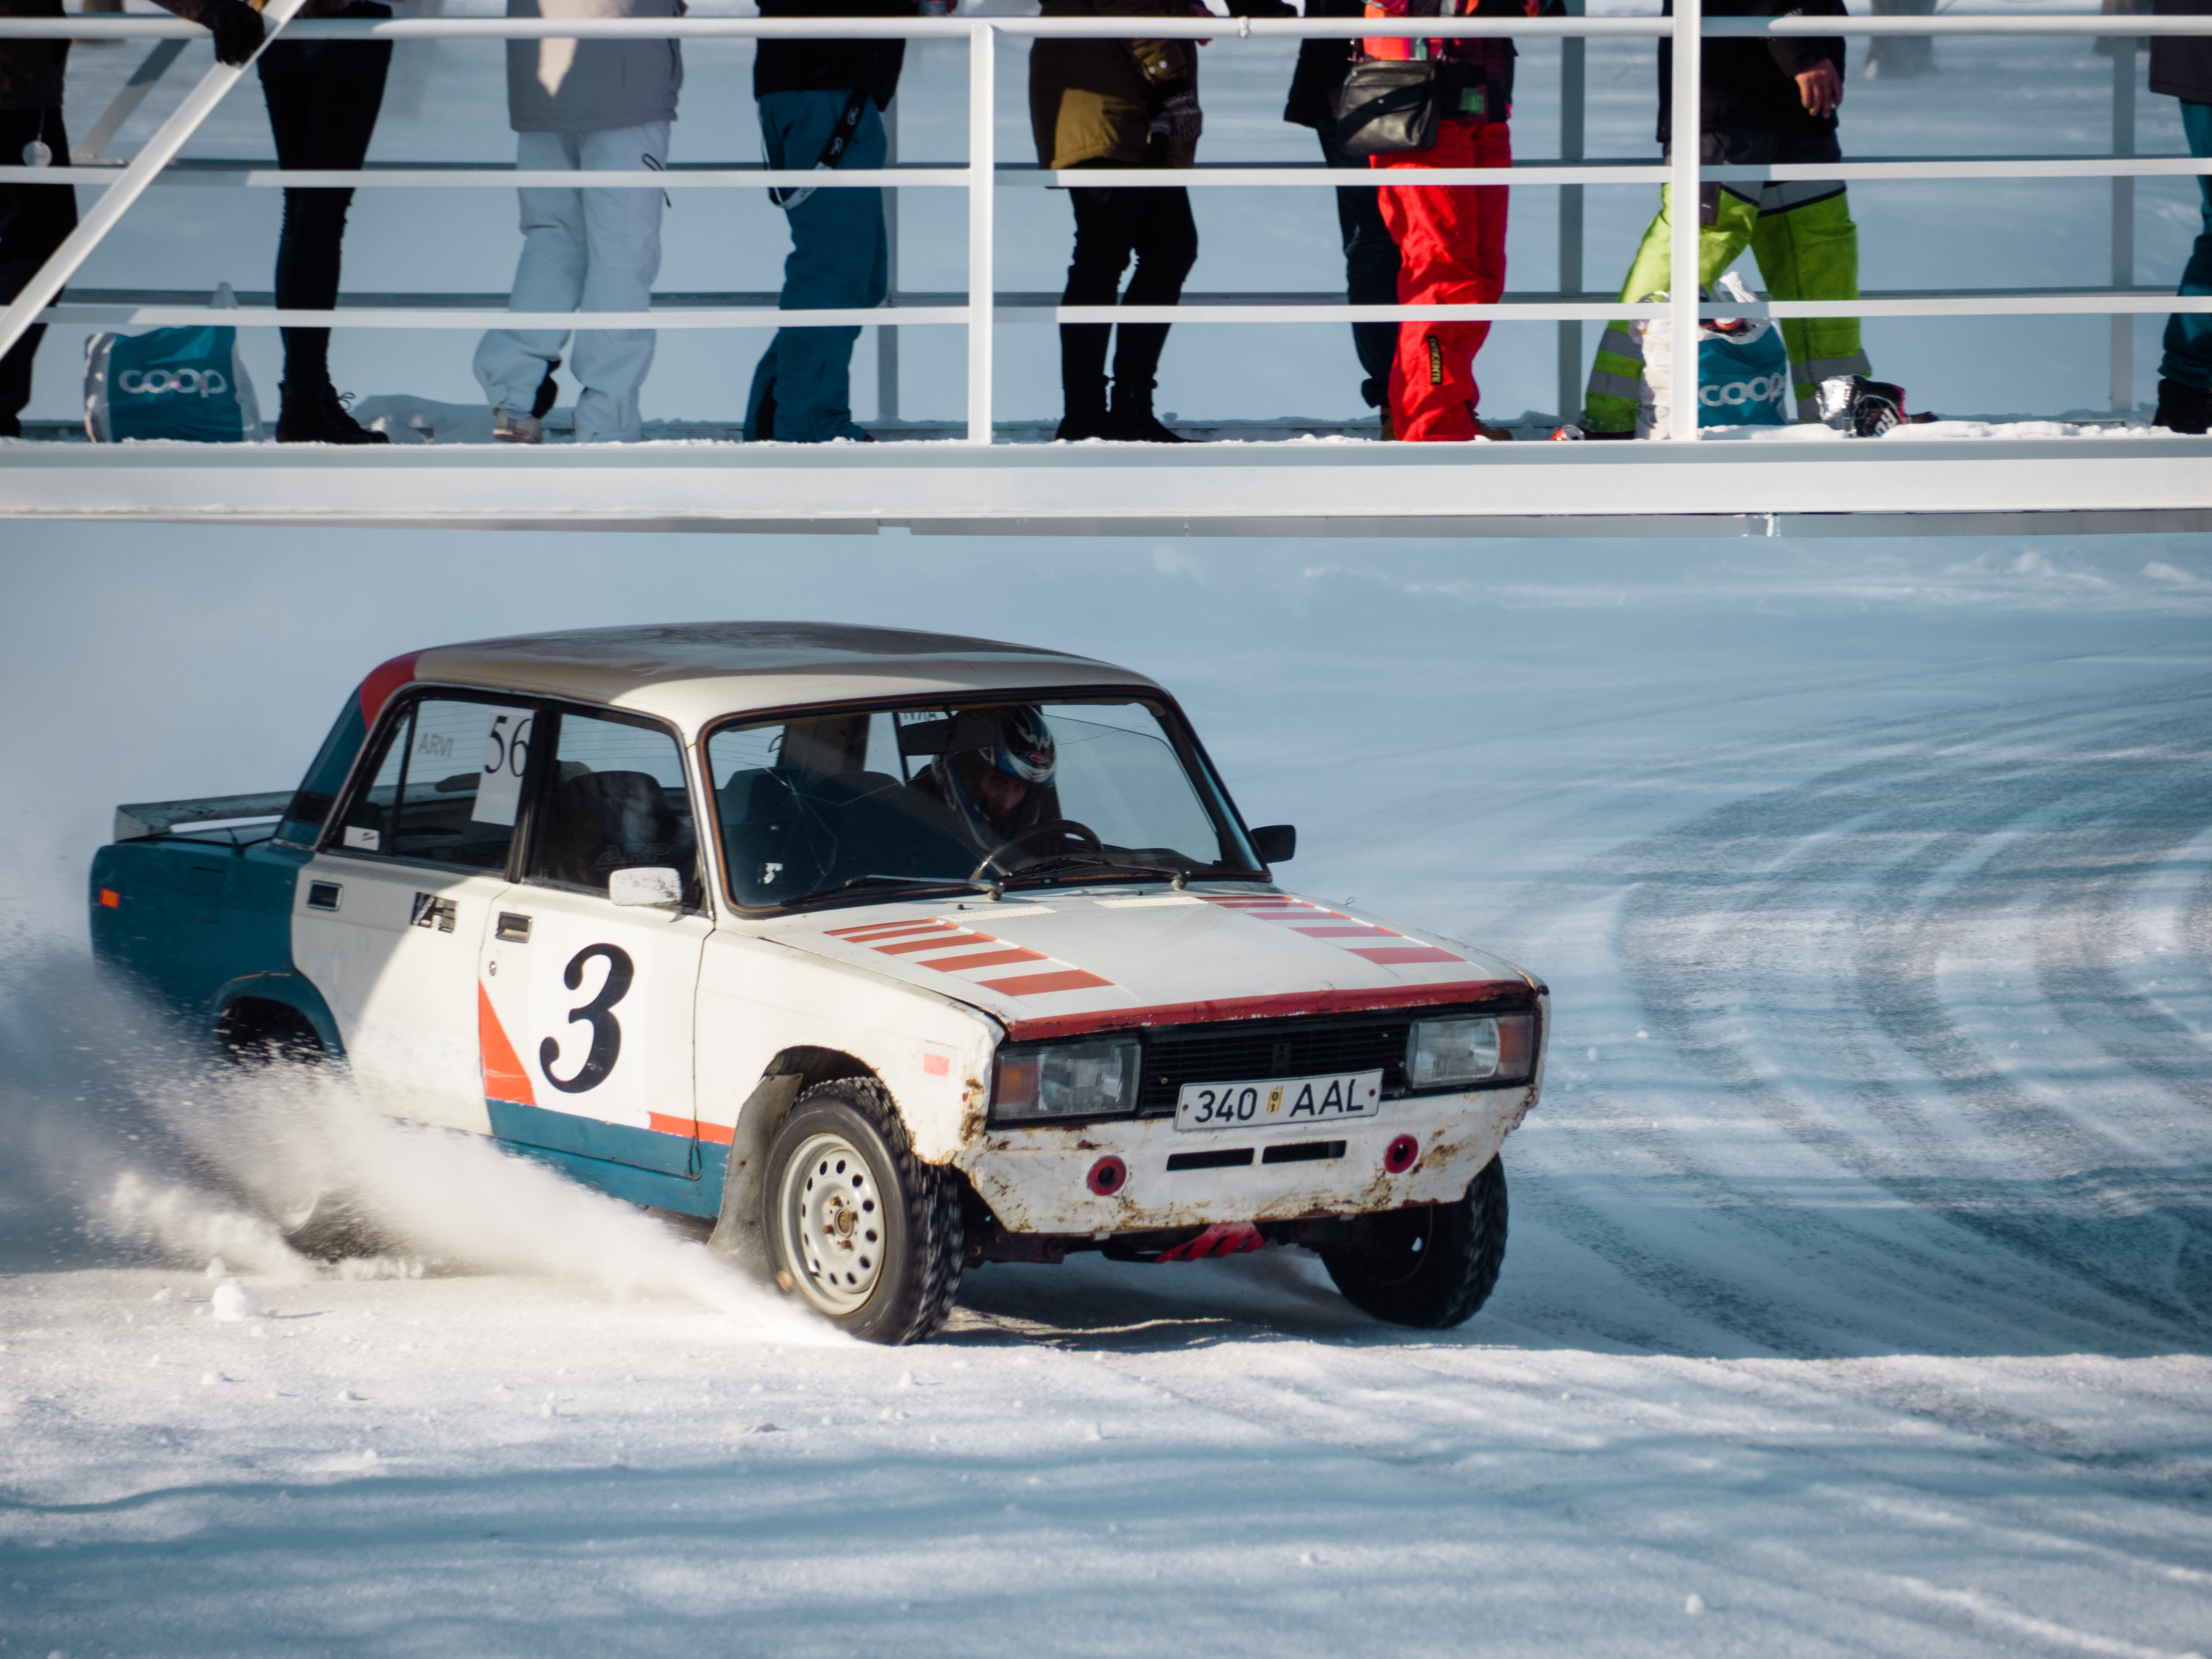 This Lada even has racing livery!